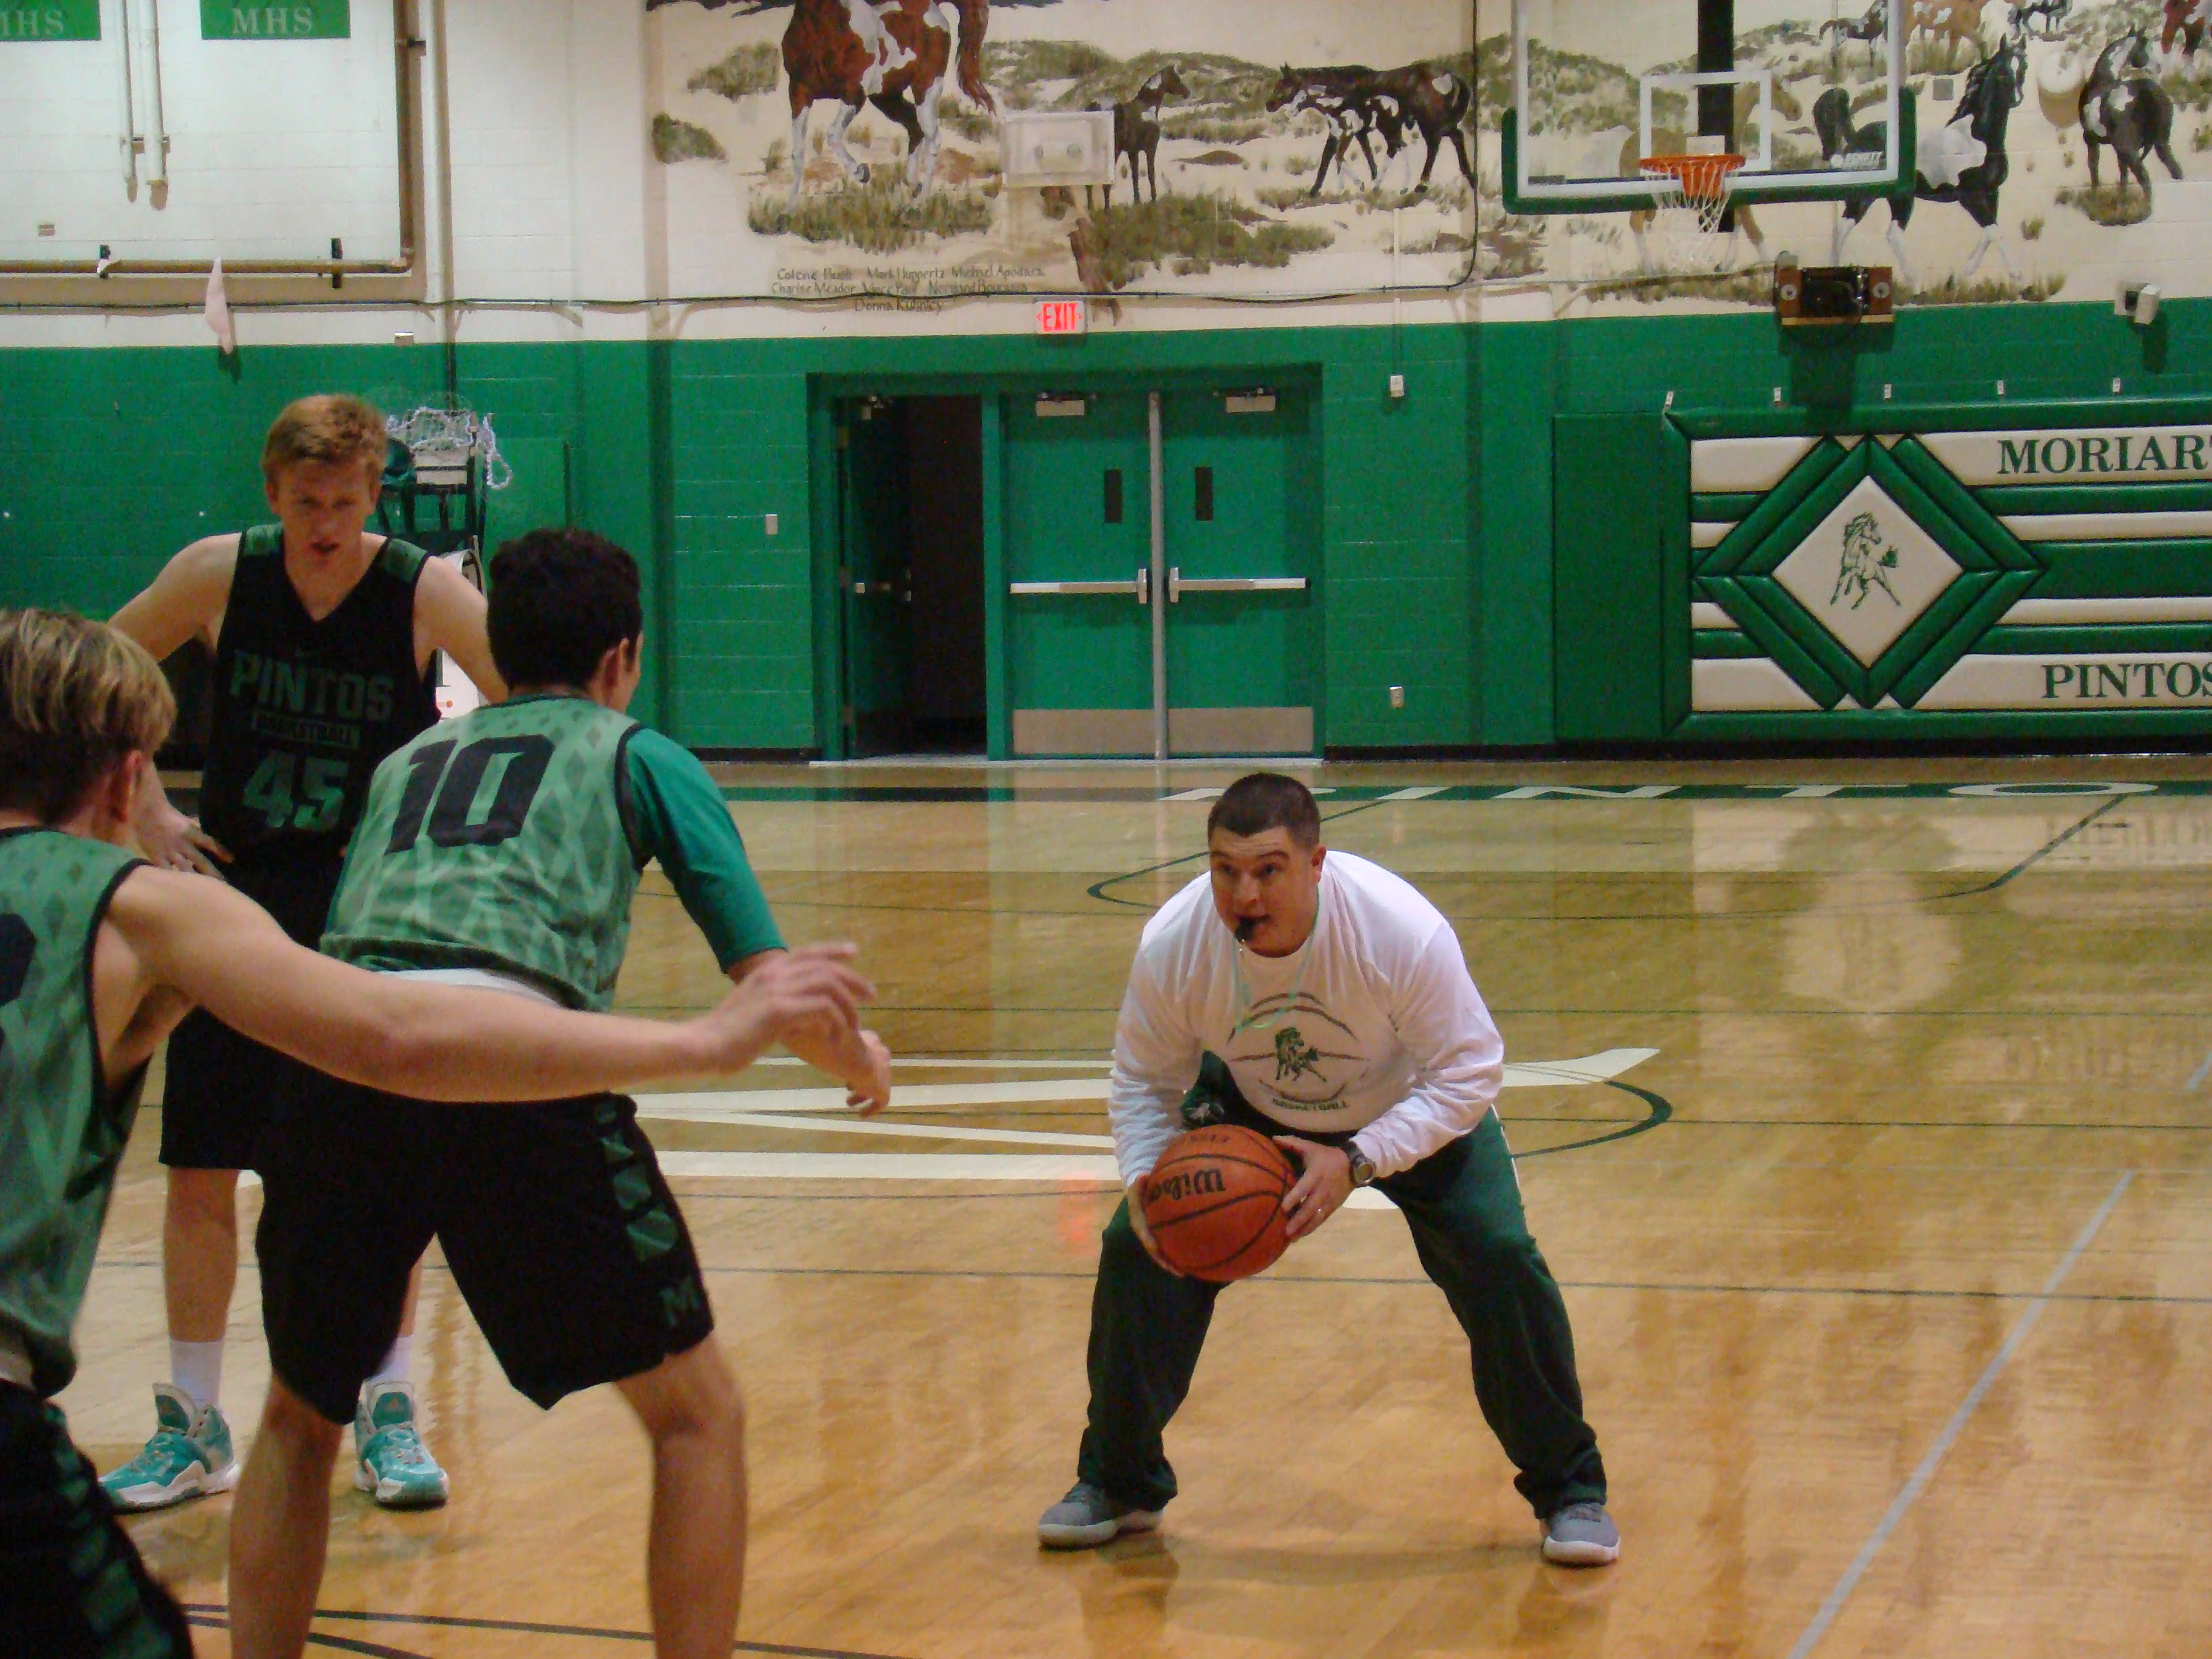 New Moriarty basketball coach wants Pintos to be the hardest-working team in the state